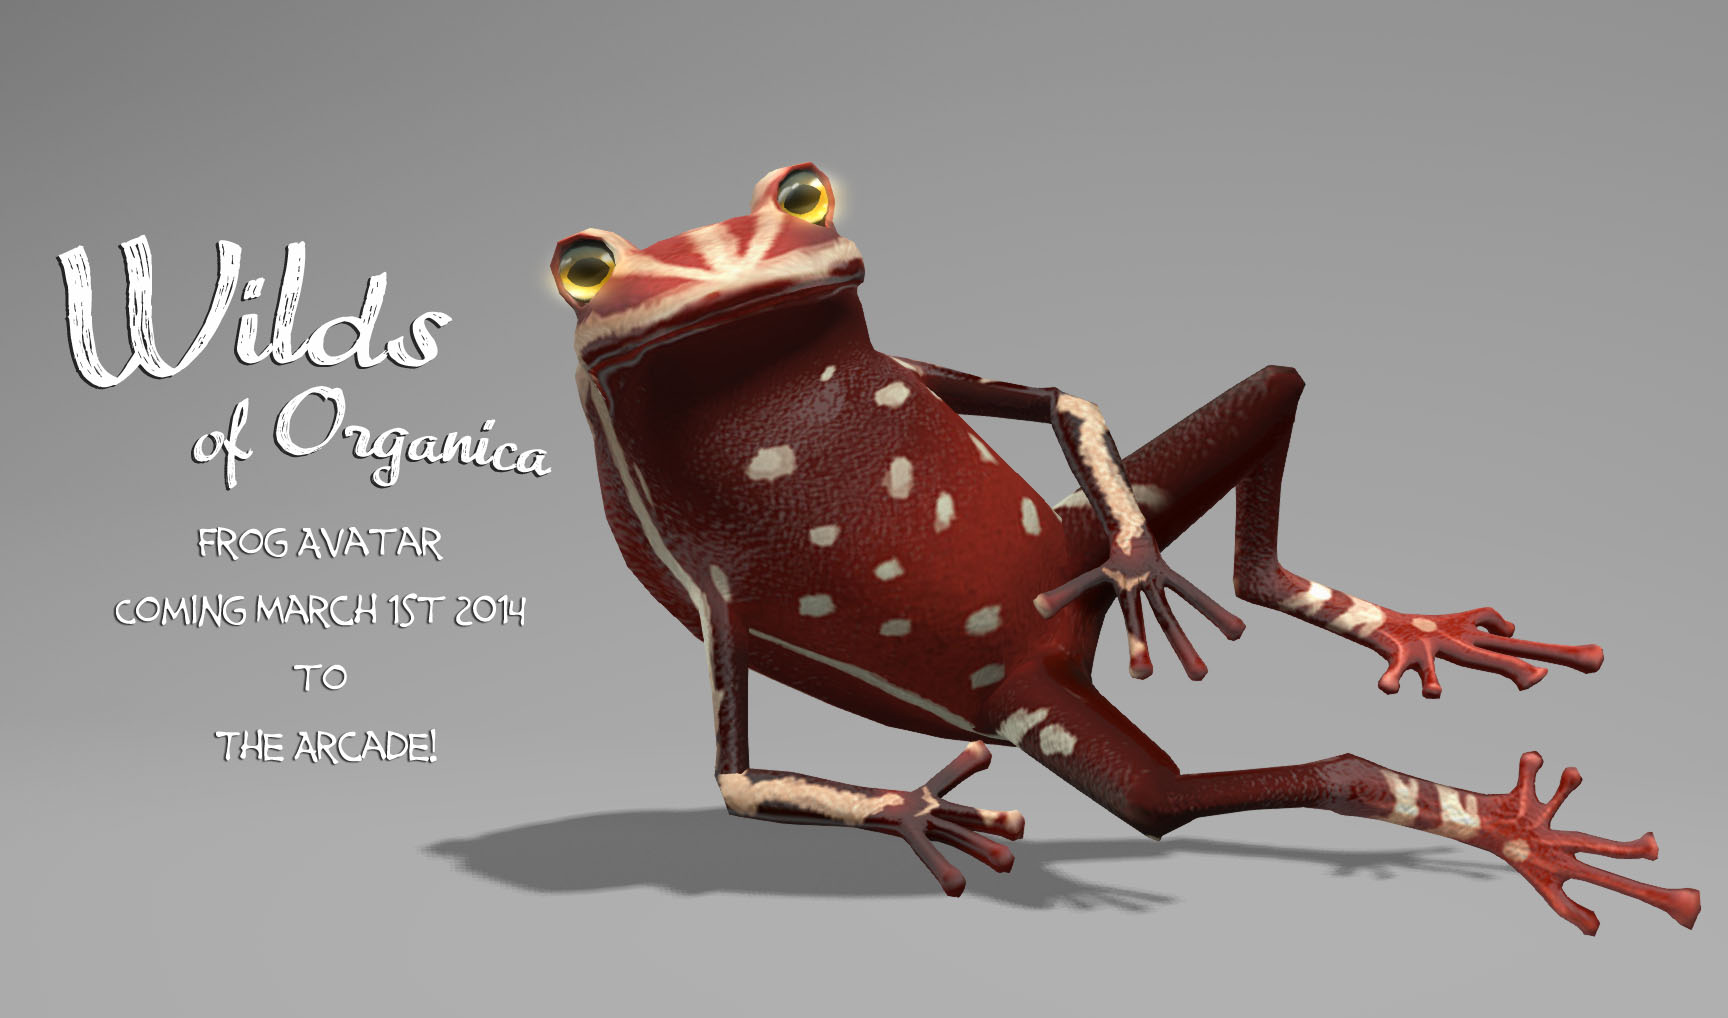 Wilds of Organica - Frog Avatar